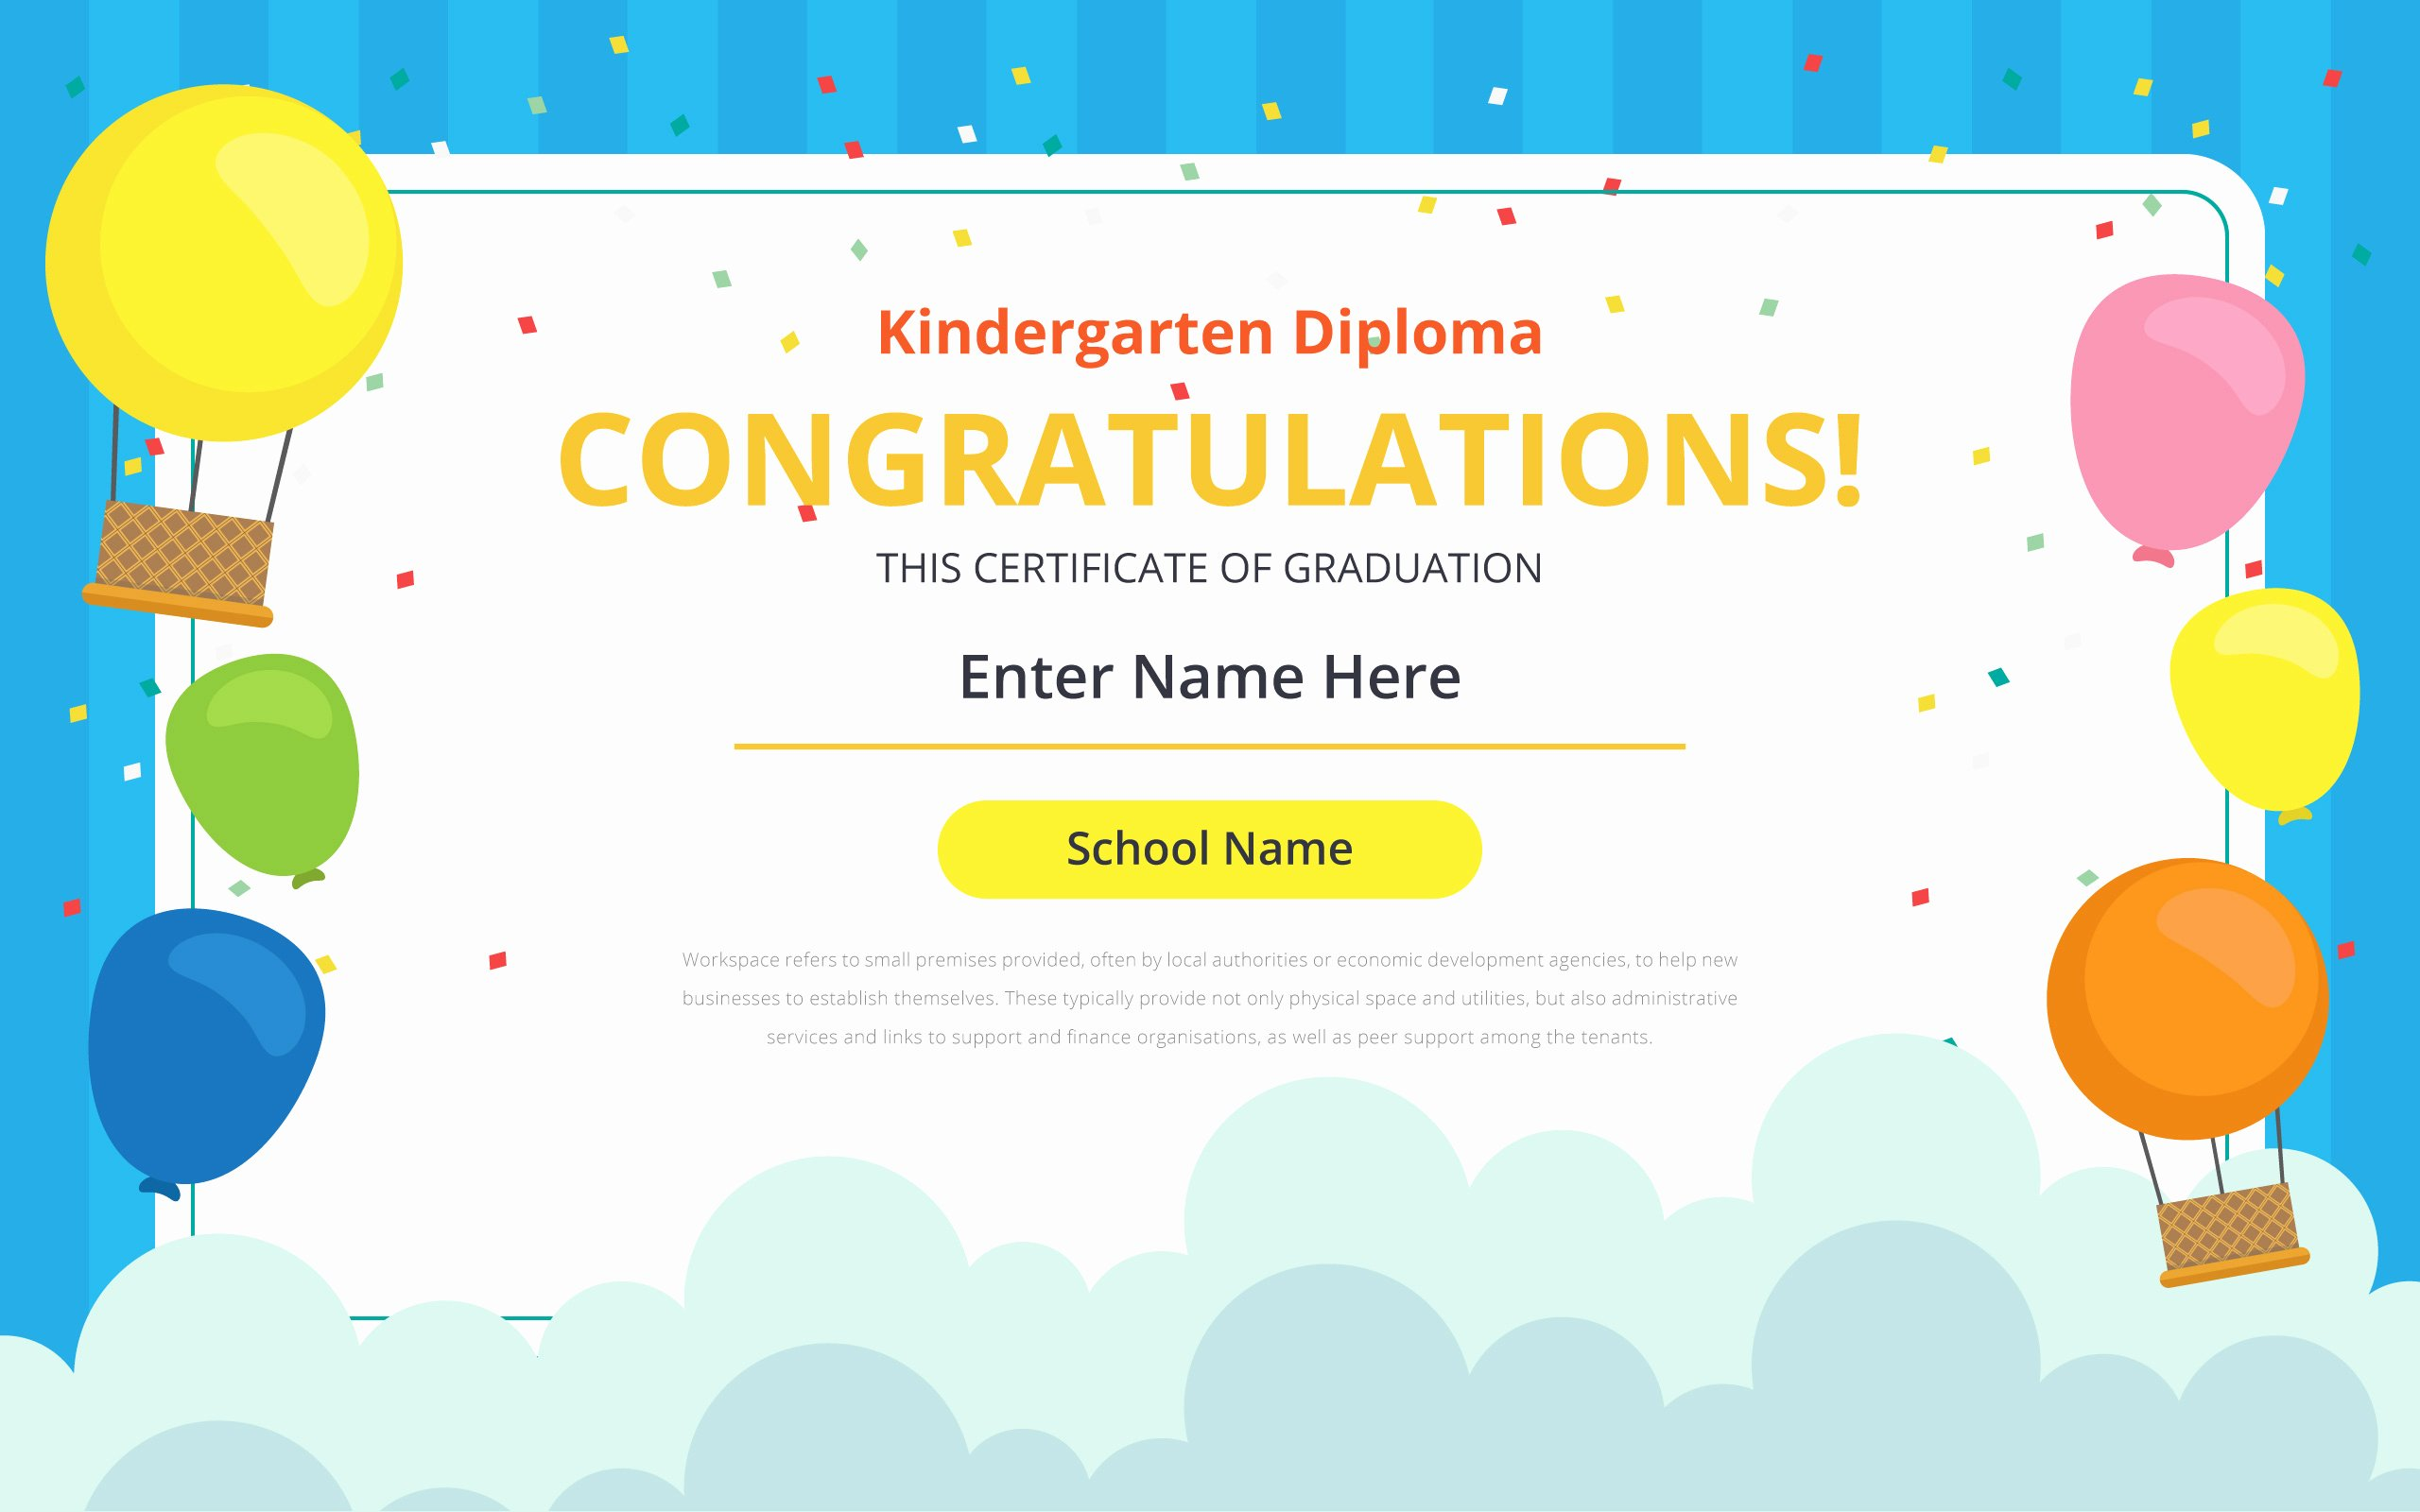 Kindergarten Diploma Template Free Luxury Kindergarten Certificate Free Vector Art 21 Free Downloads